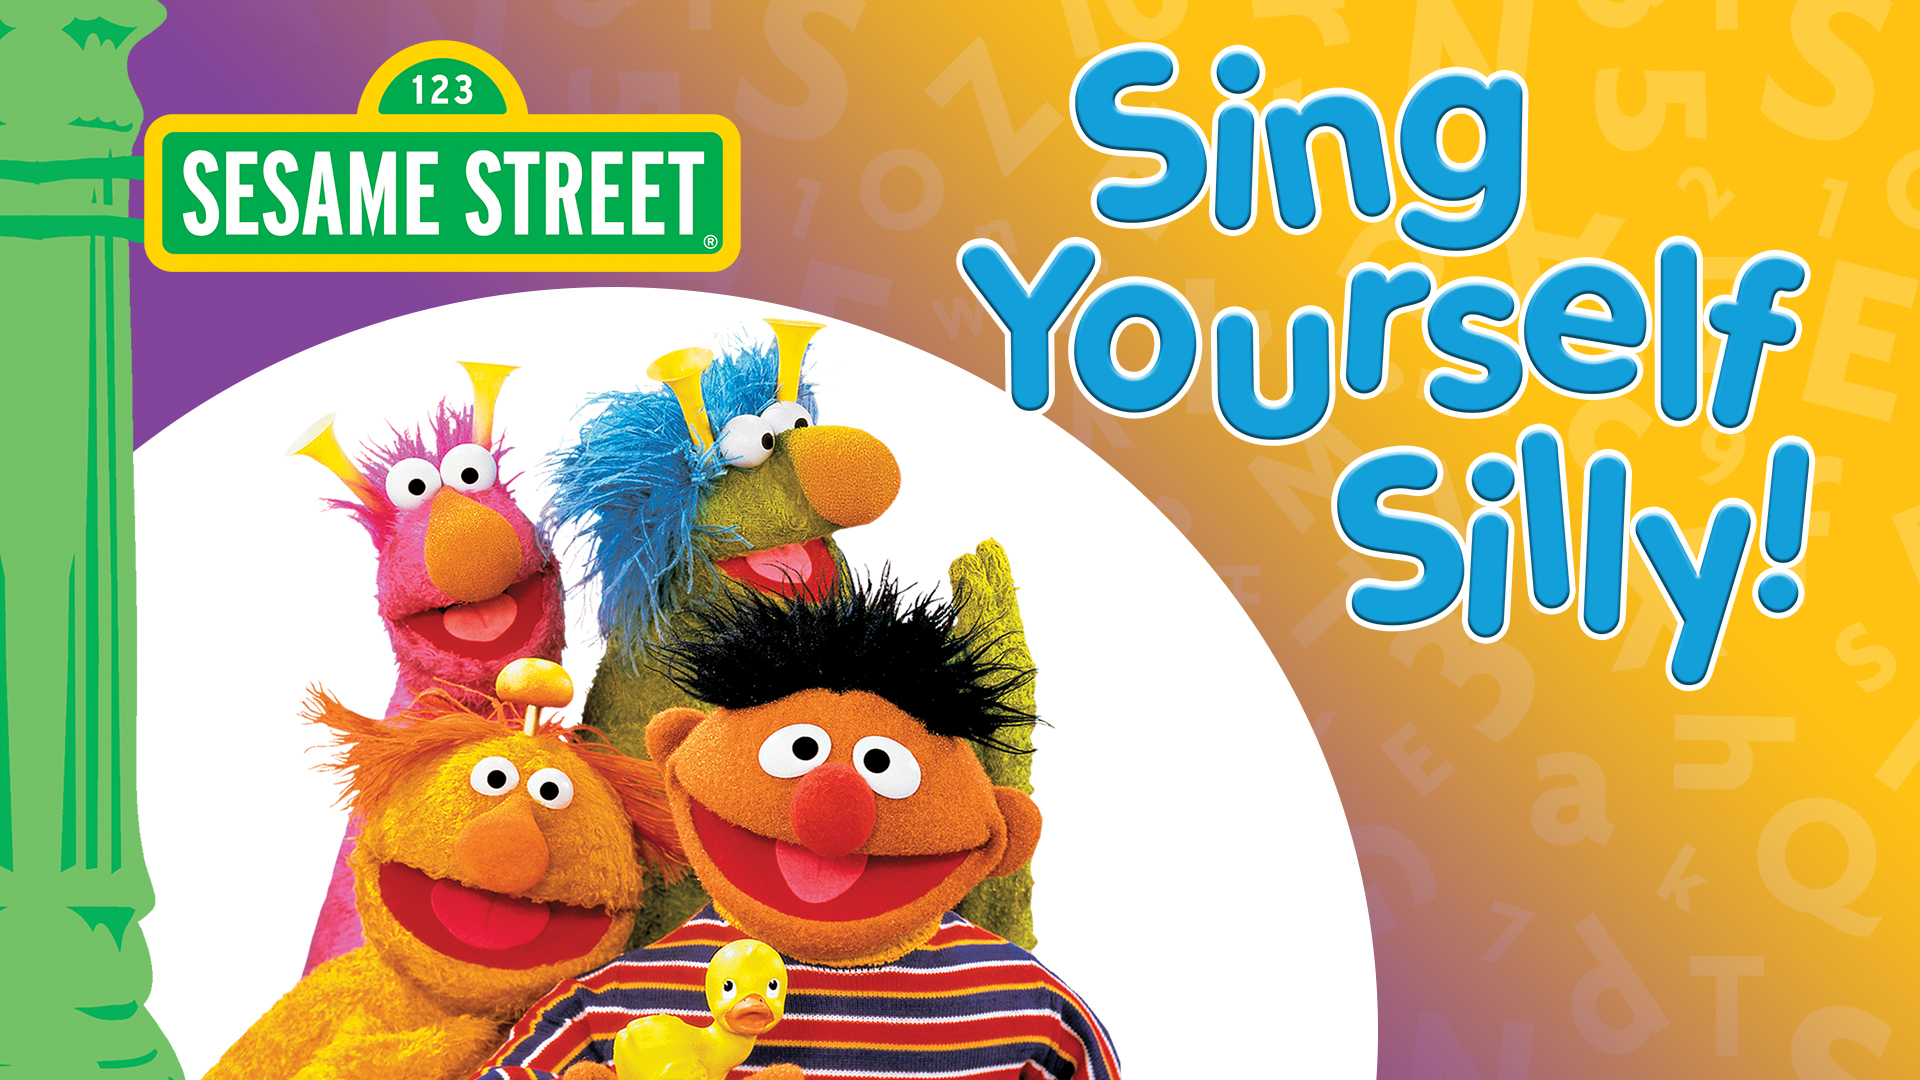 Sesame Street: Sing Yourself Silly